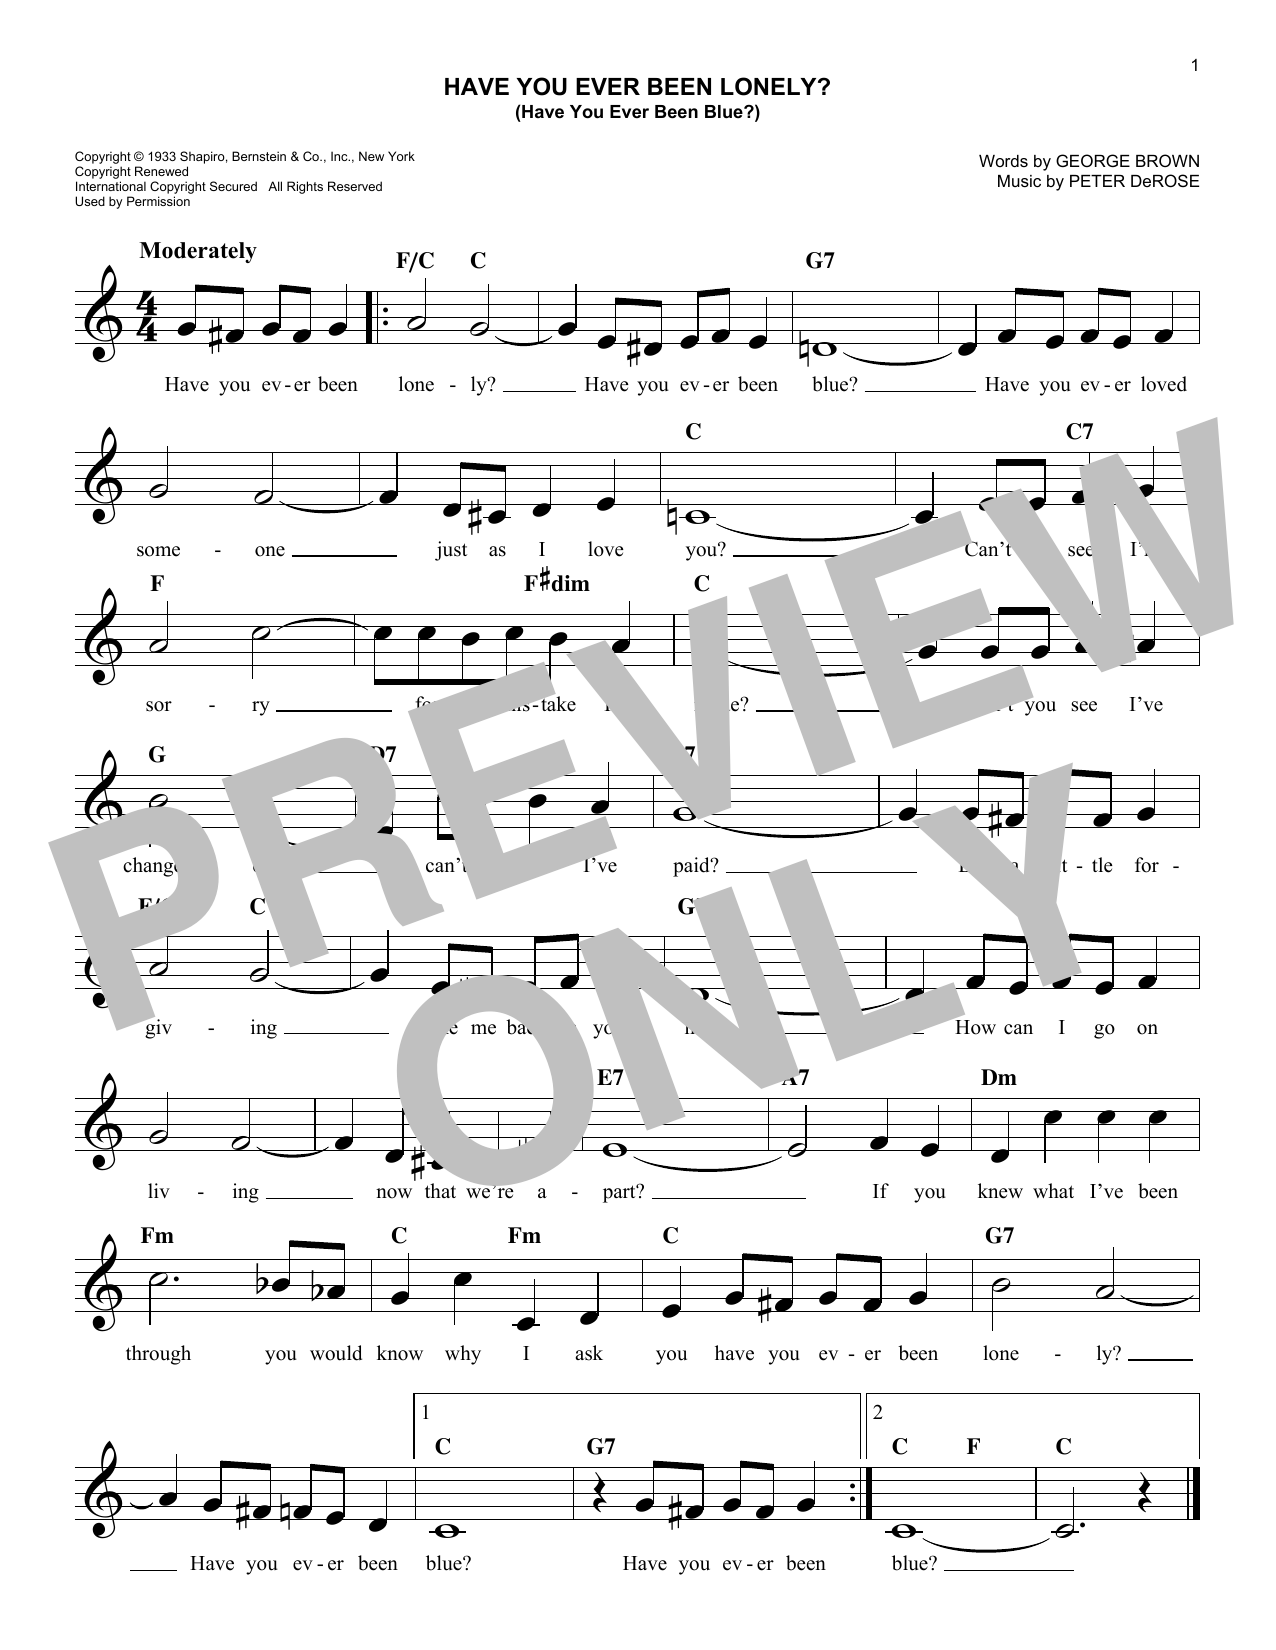 Have You Ever Been Lonely? (Have You Ever Been Blue?) Sheet Music